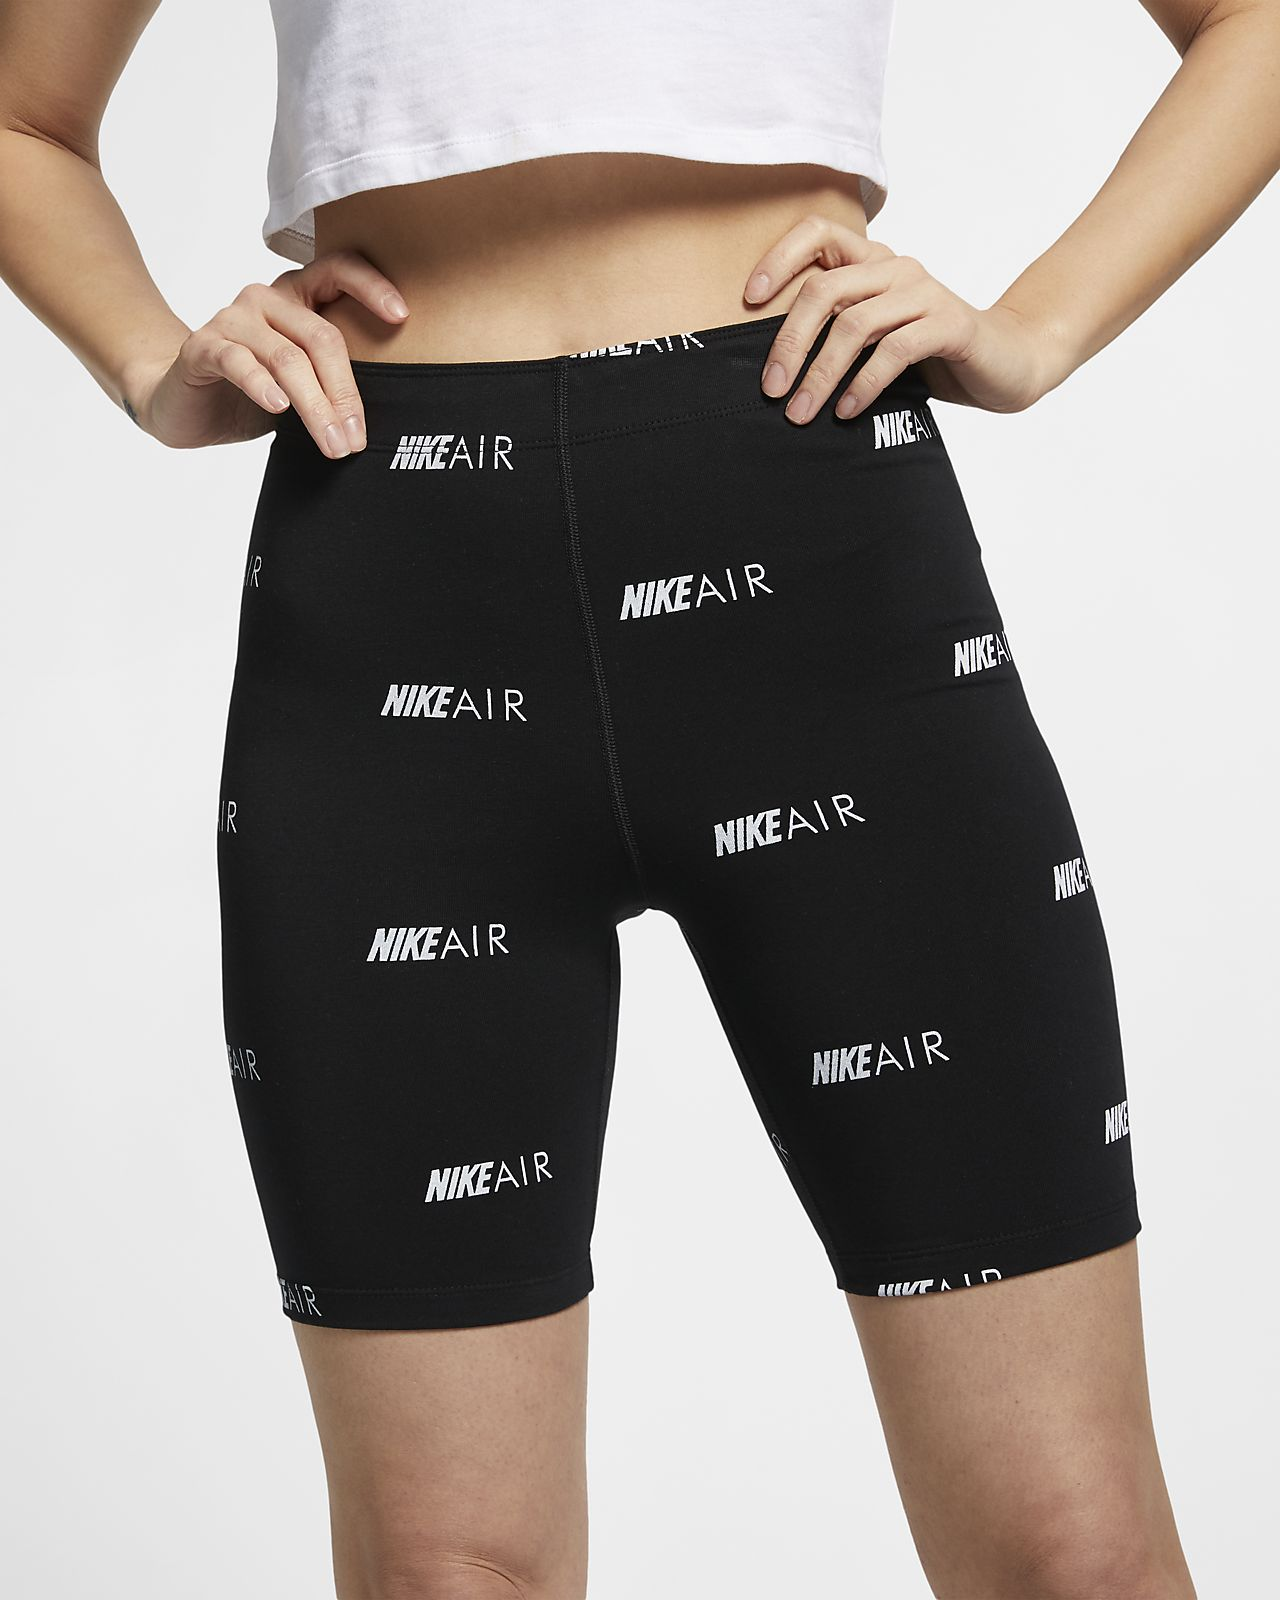 Nike Air Women's Printed Shorts